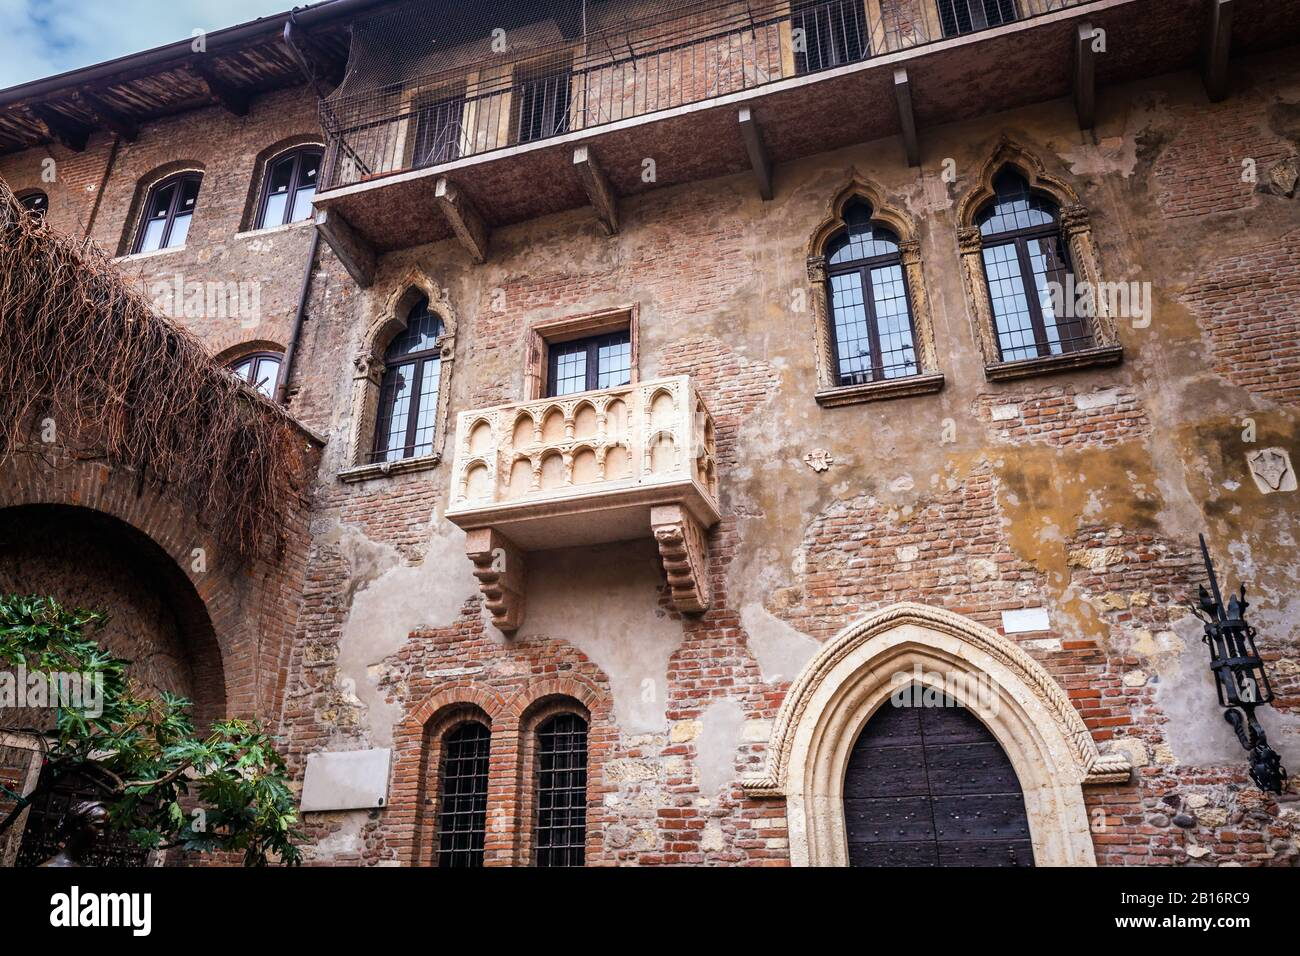 Patio and balcony of Romeo and Juliet house at golden sunset, Verona, Italy Stock Photo